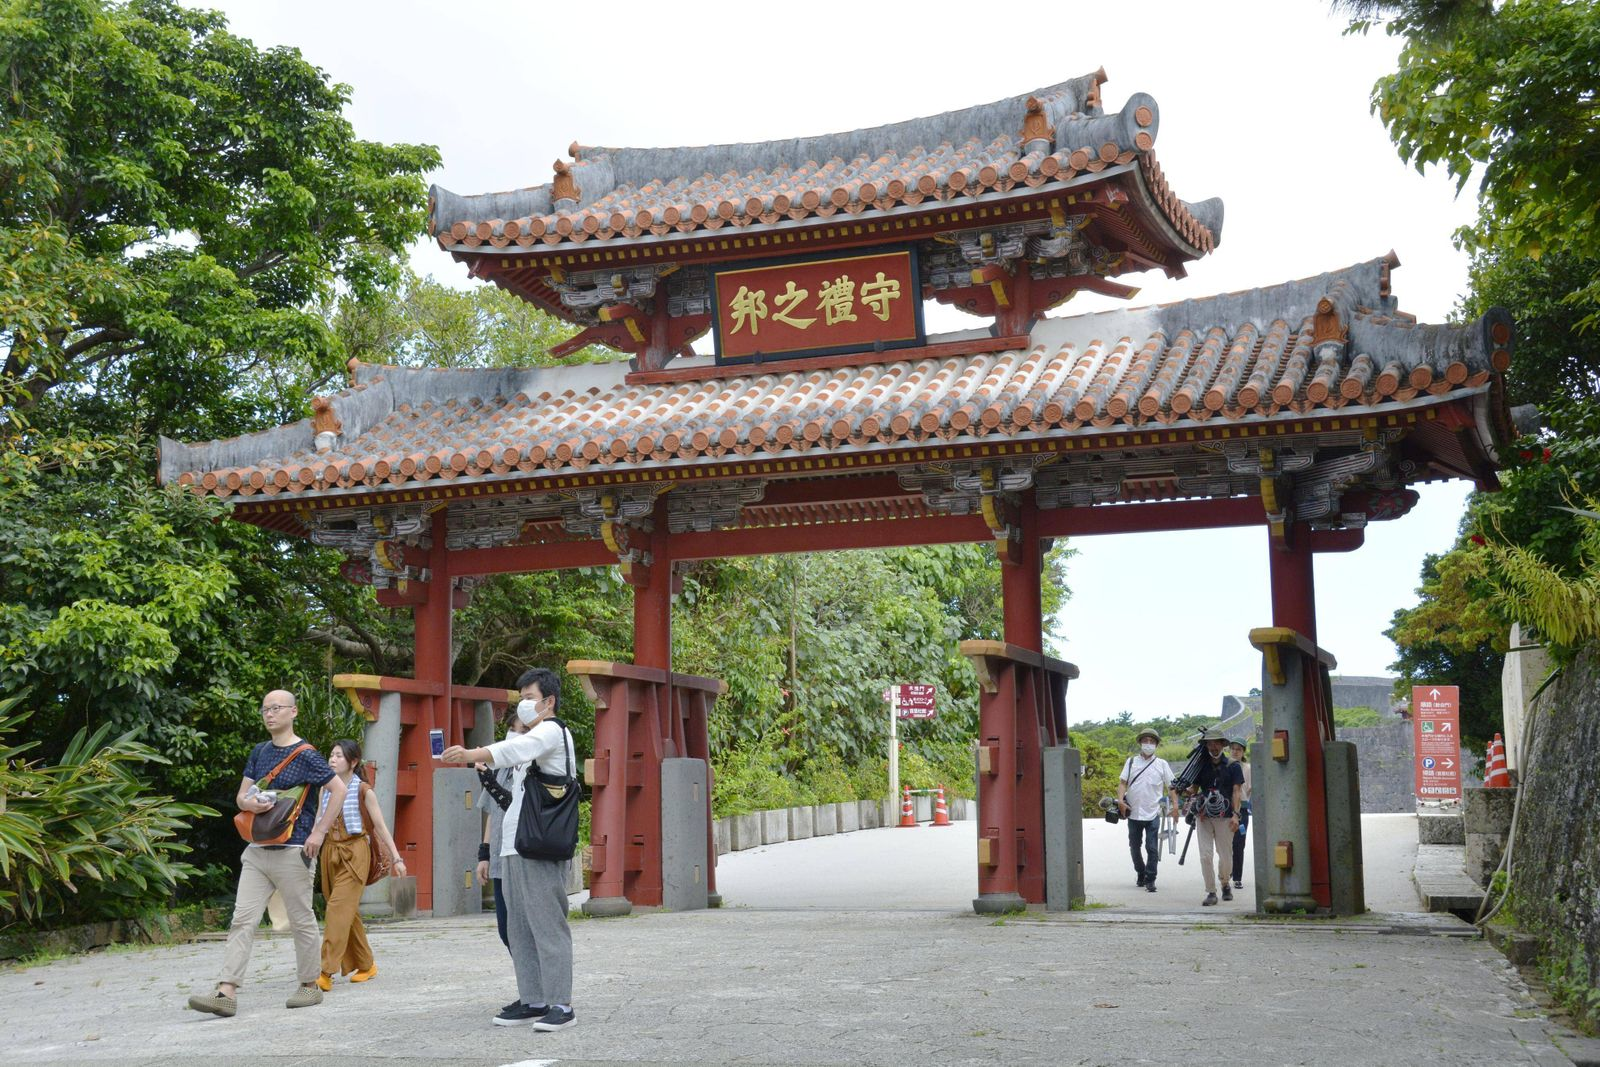 Japan s travel subsidy campaign begins Few people are seen near Shuri Castle in Naha, Okinawa, on July 22, 2020. Japan s